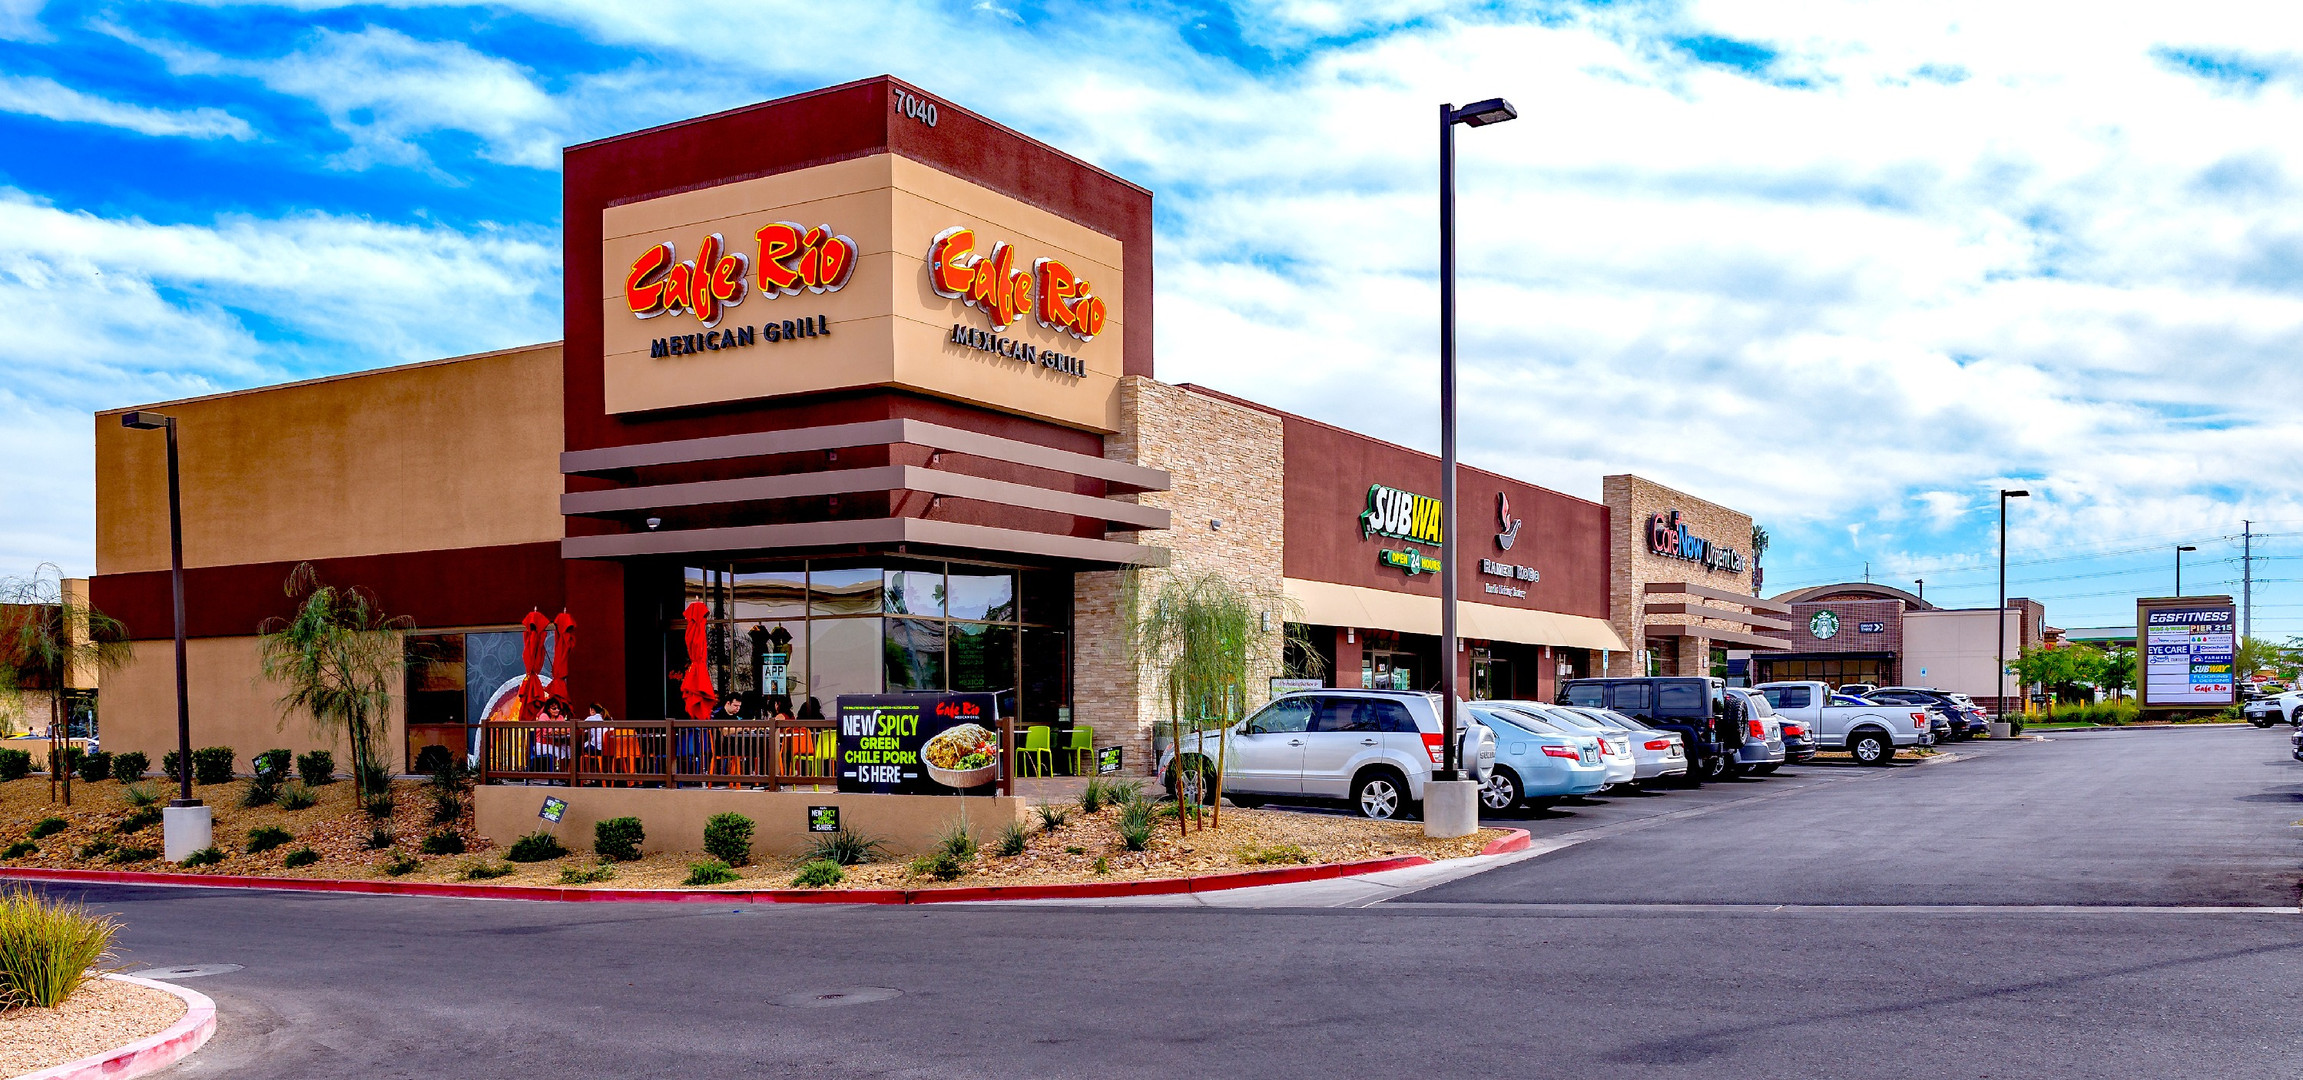 Restaurants and Stores